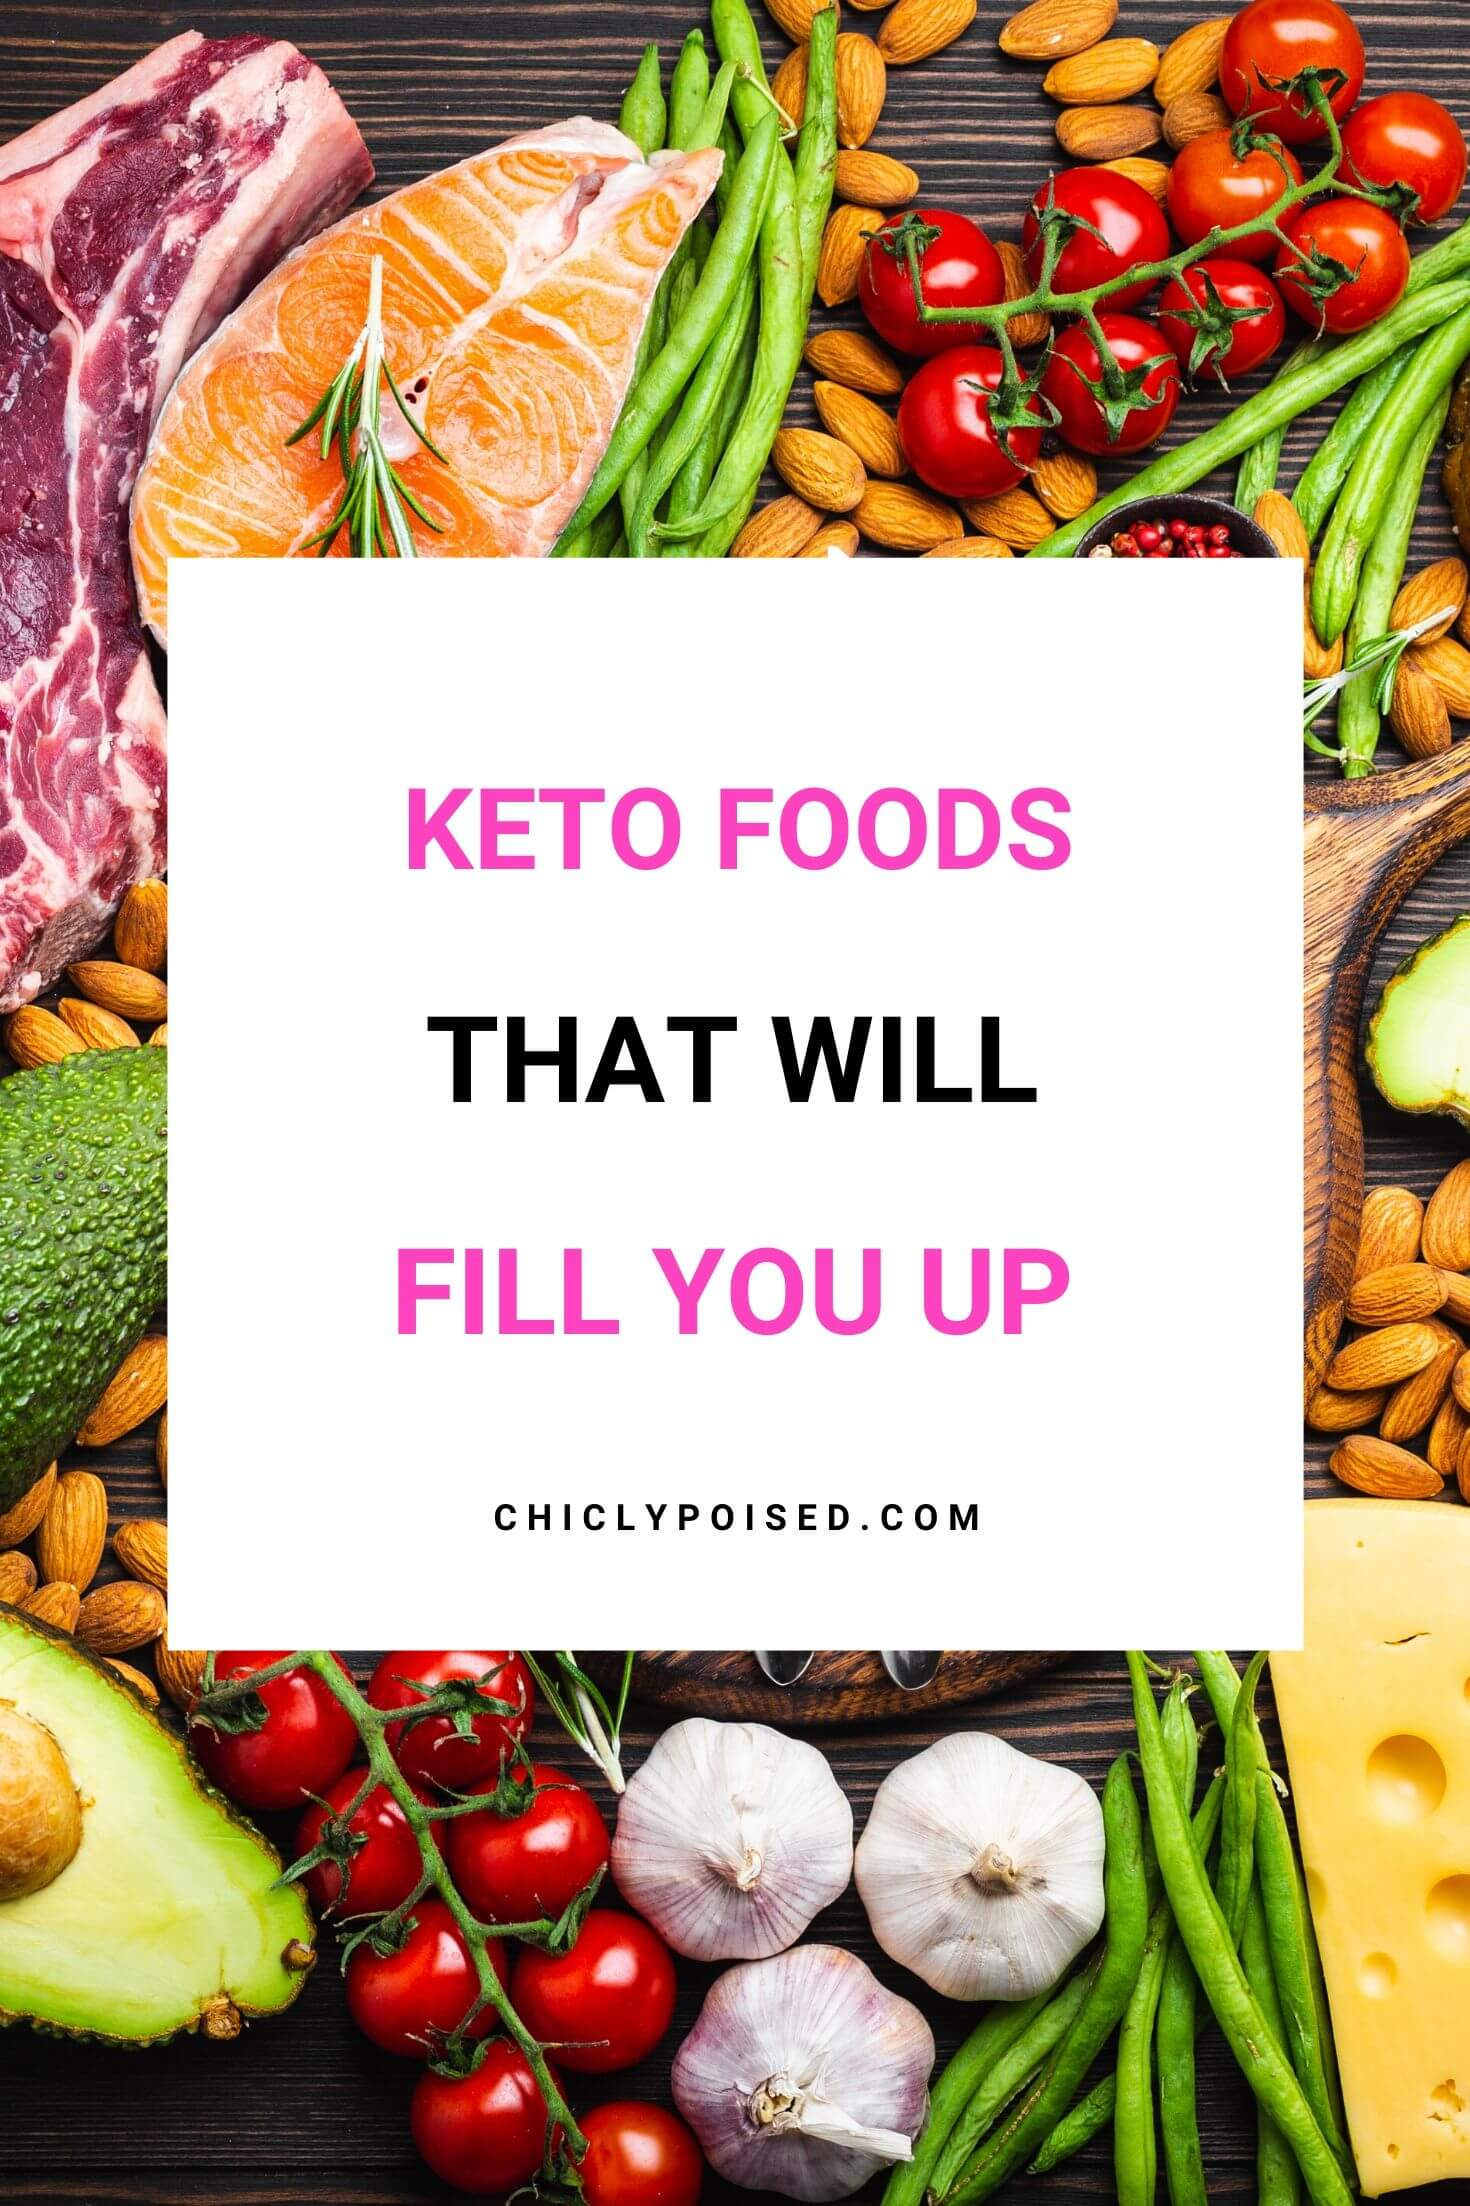 Keto Foods That Will Fill You Up 2 of 2